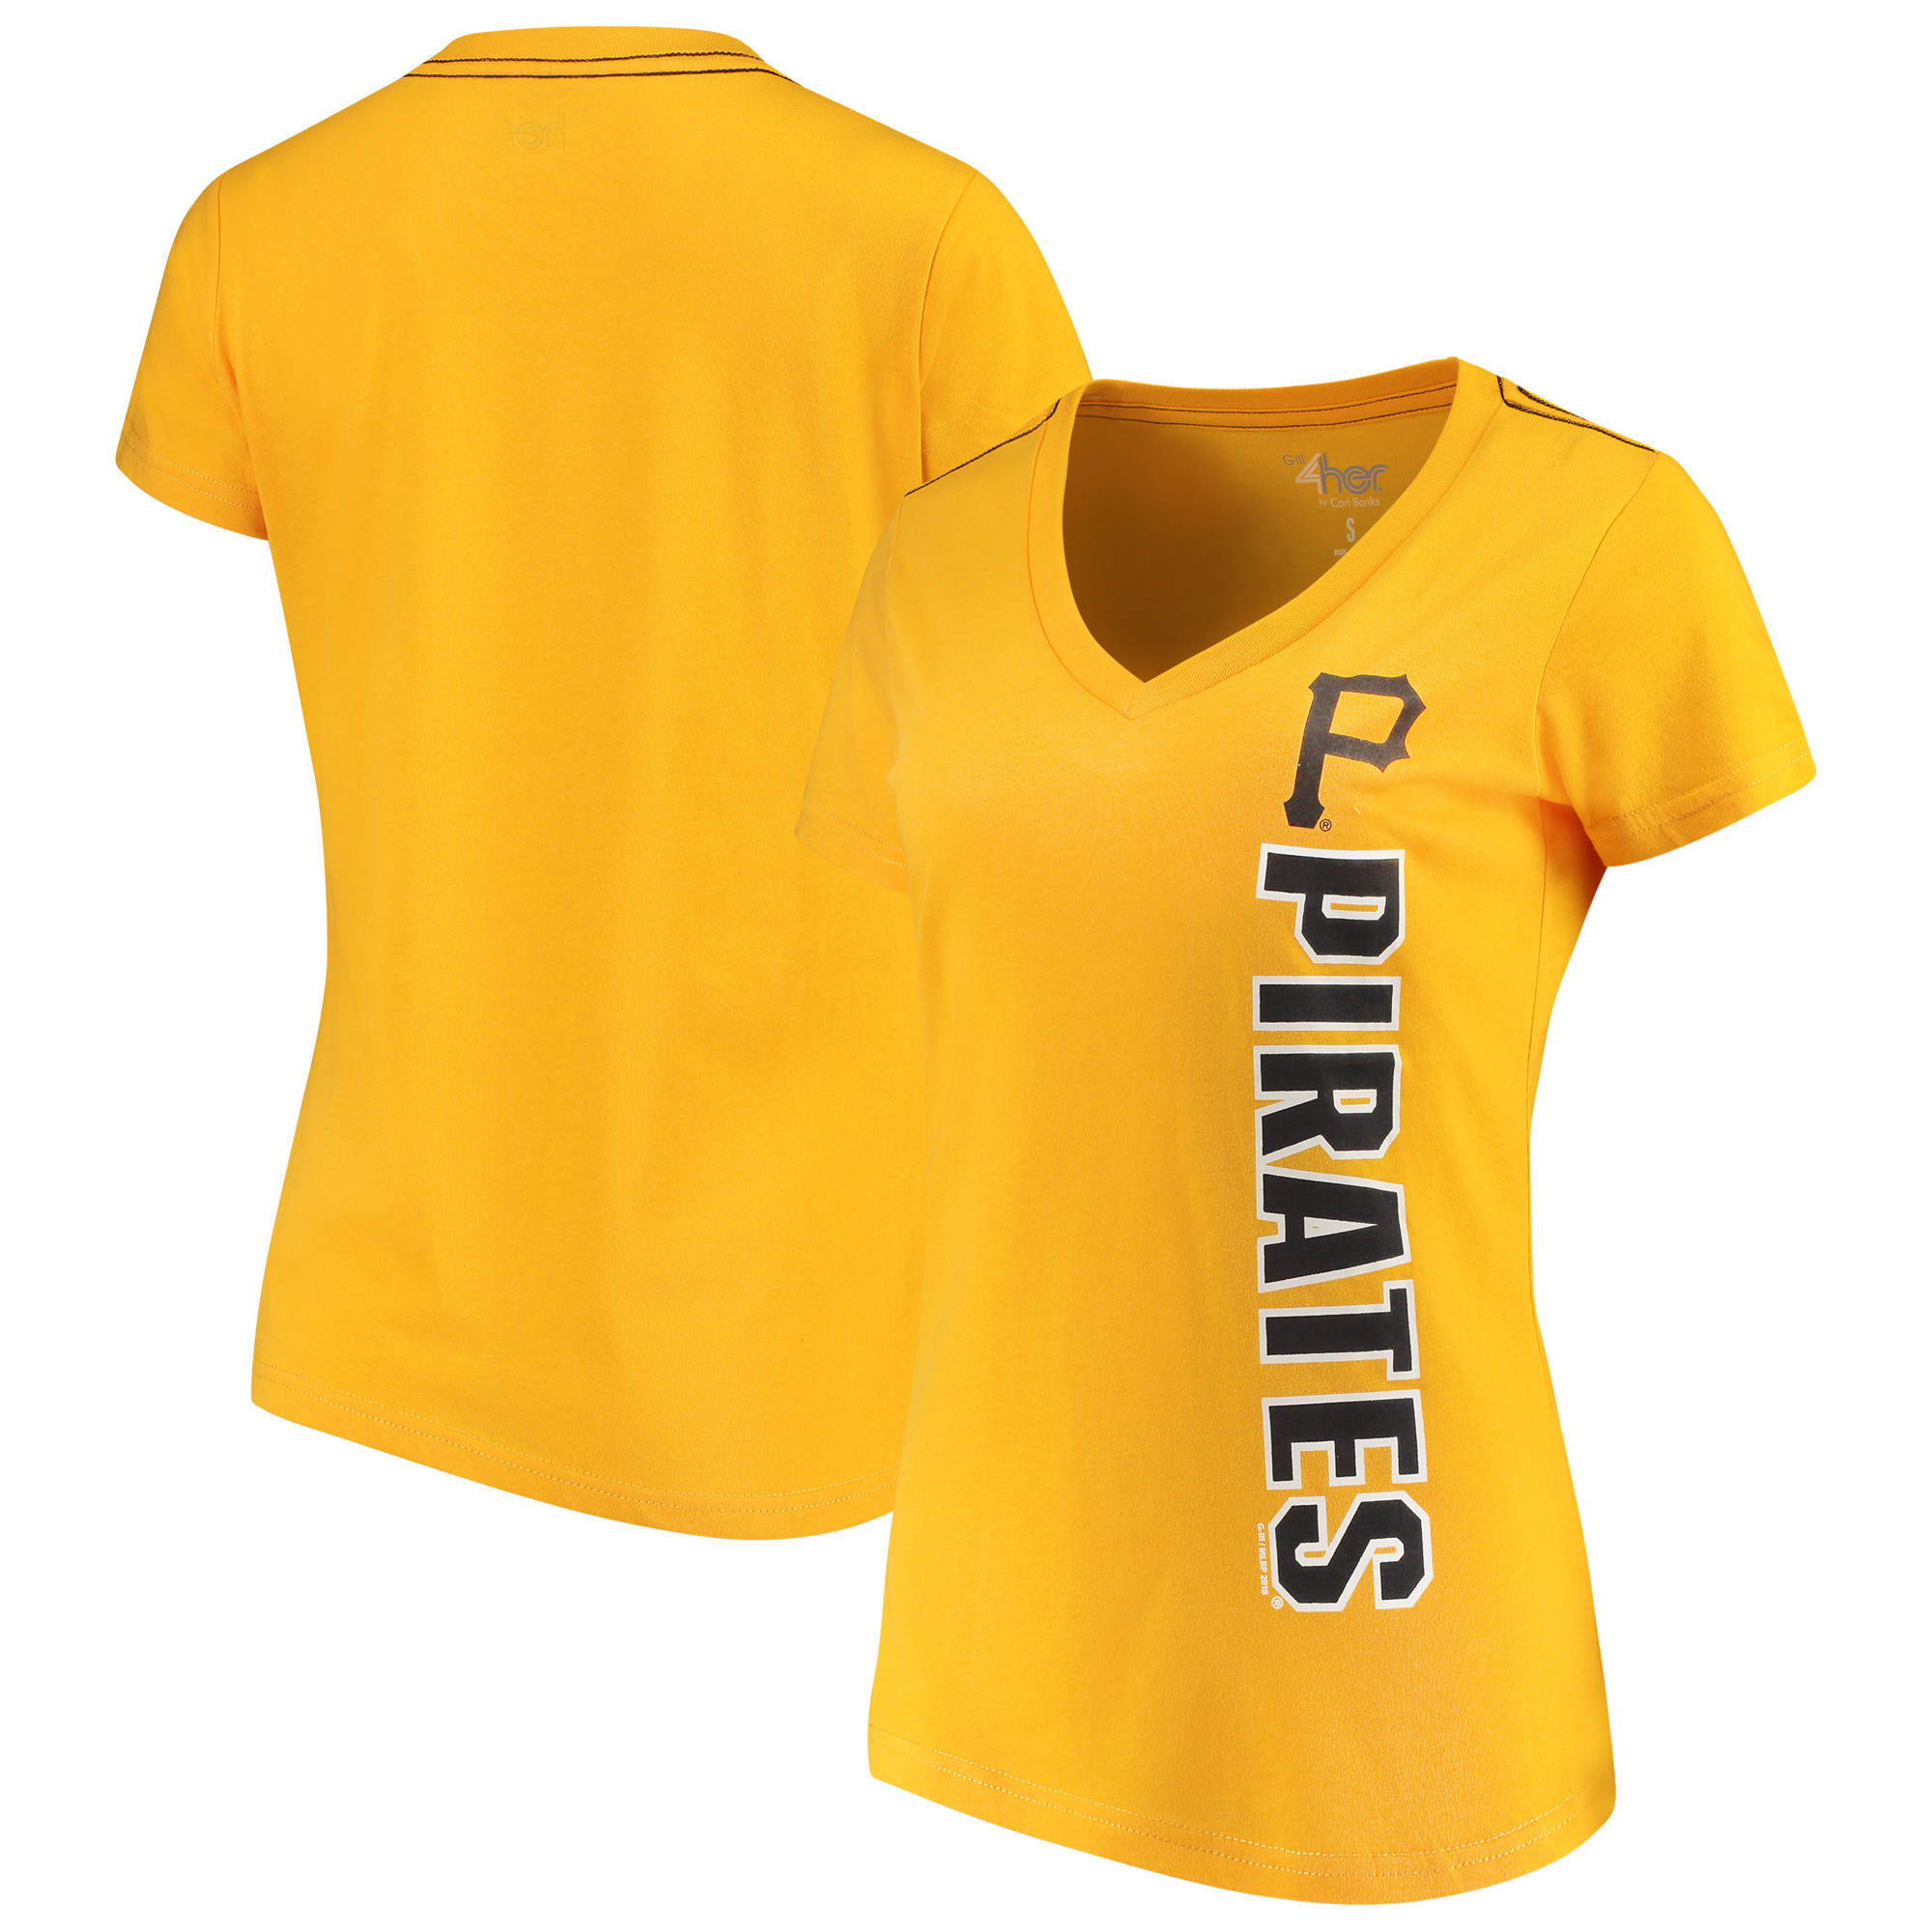 Pittsburgh Pirates G-III 4Her by Carl Banks Women's Asterisk V-Neck T-Shirt - Gold